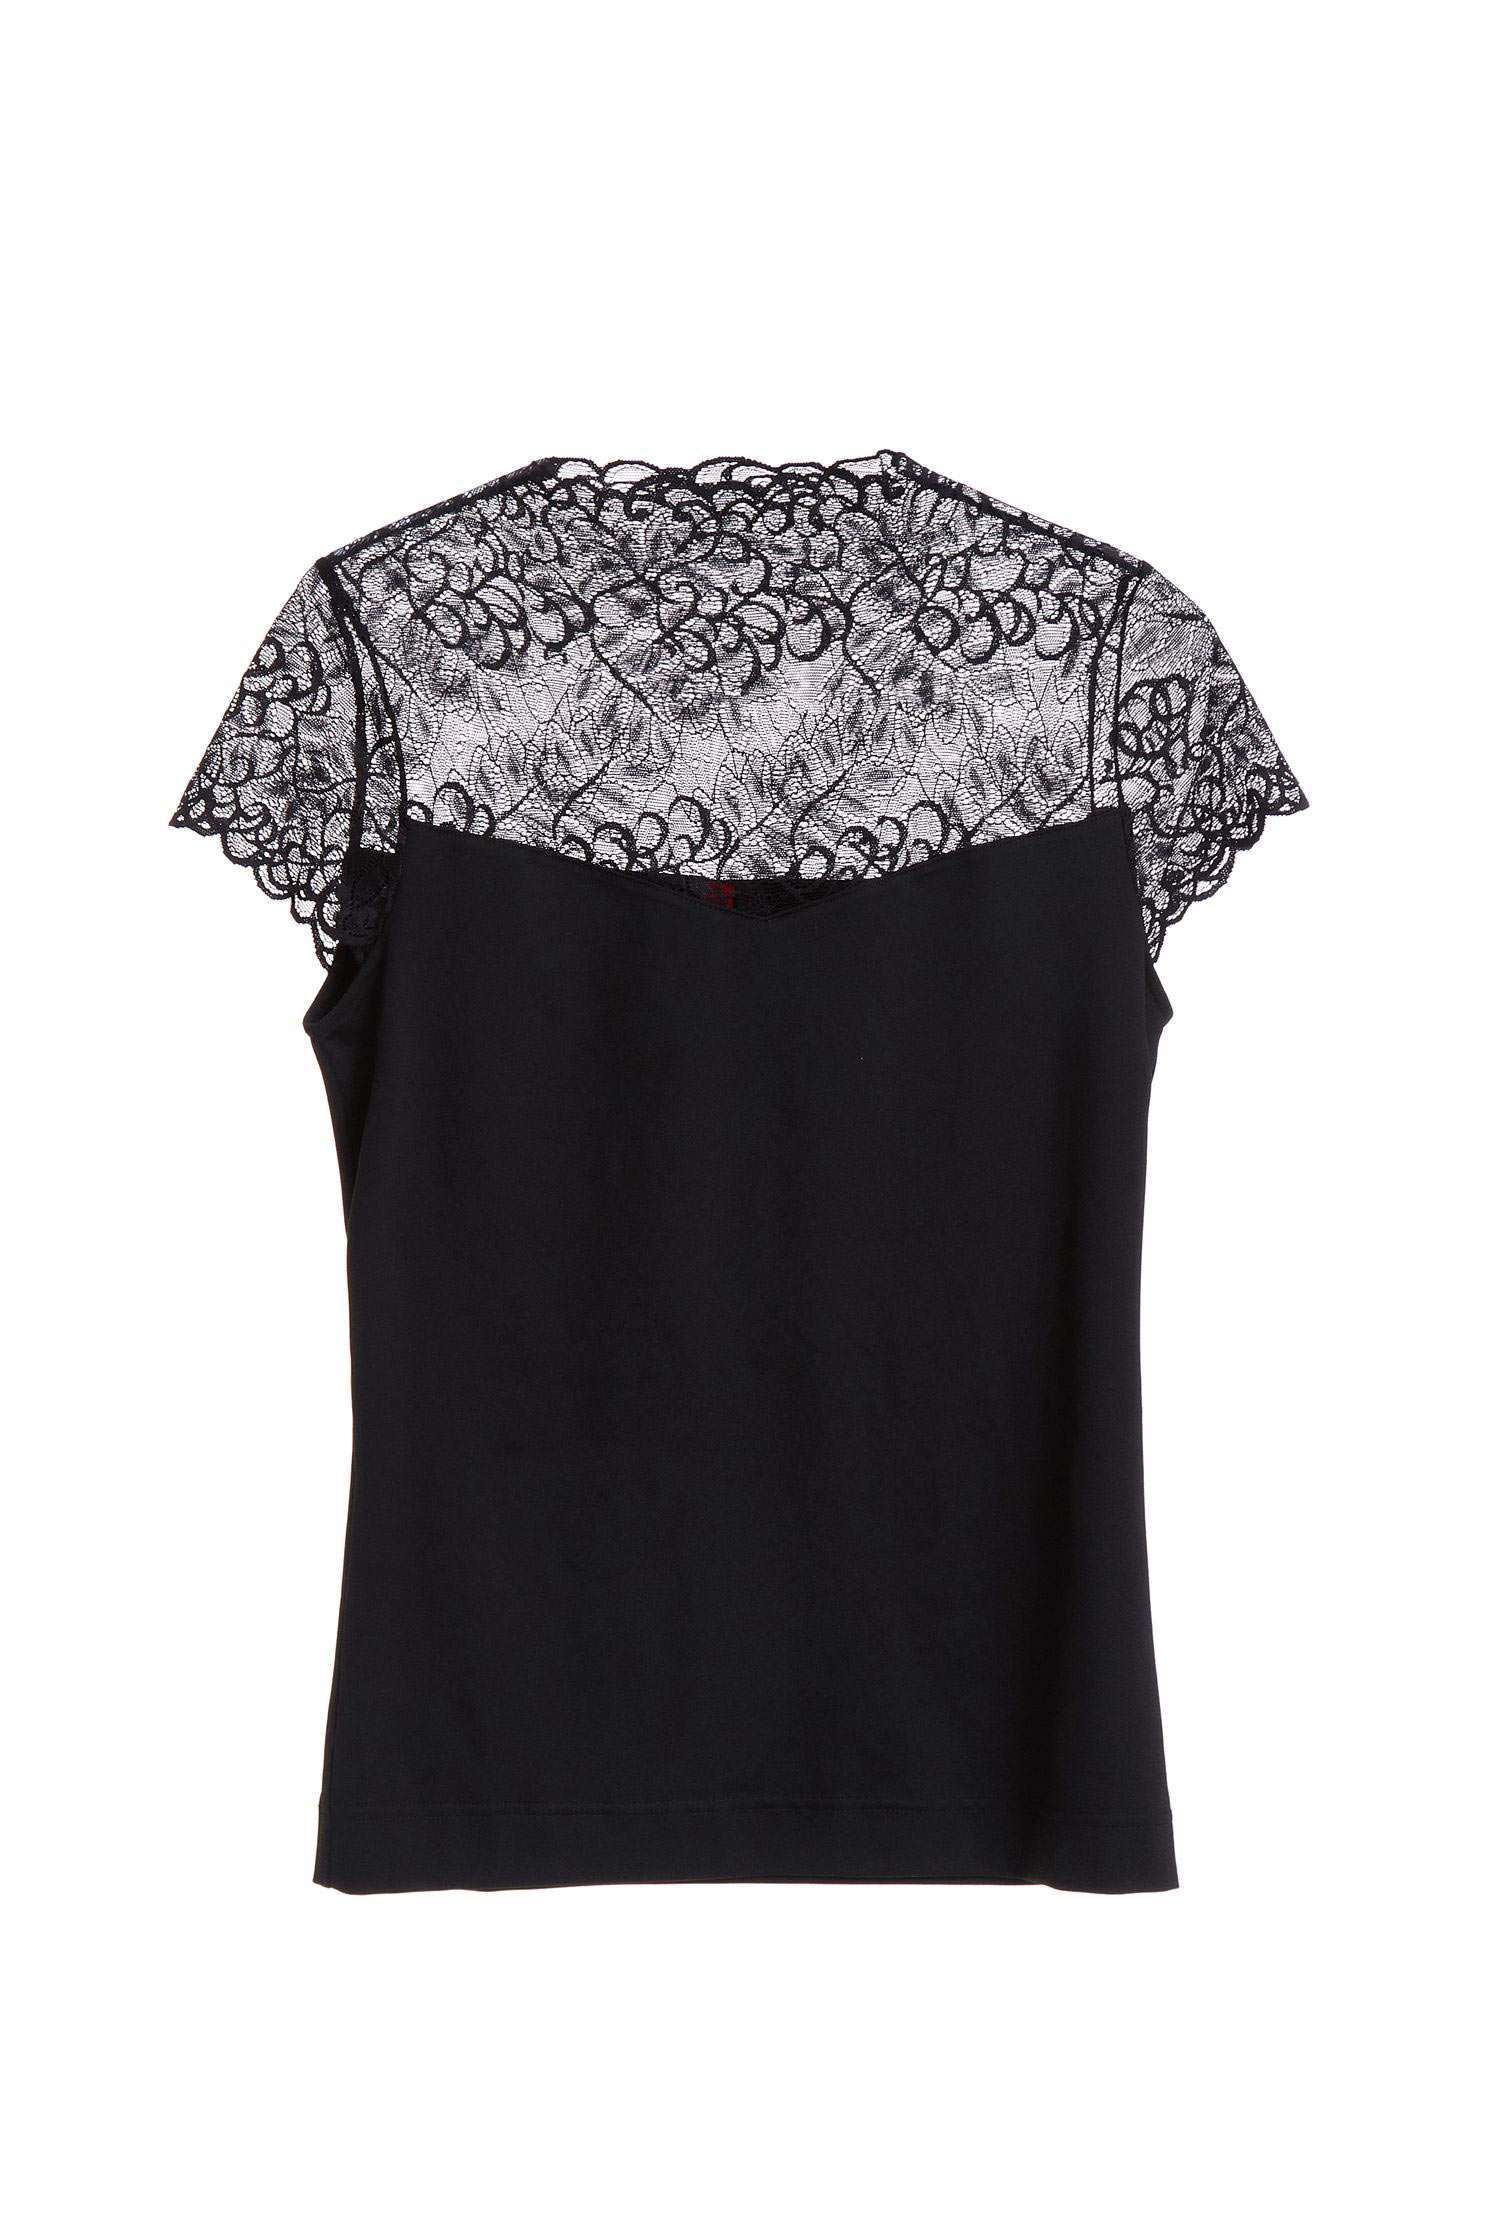 Breathable lace top